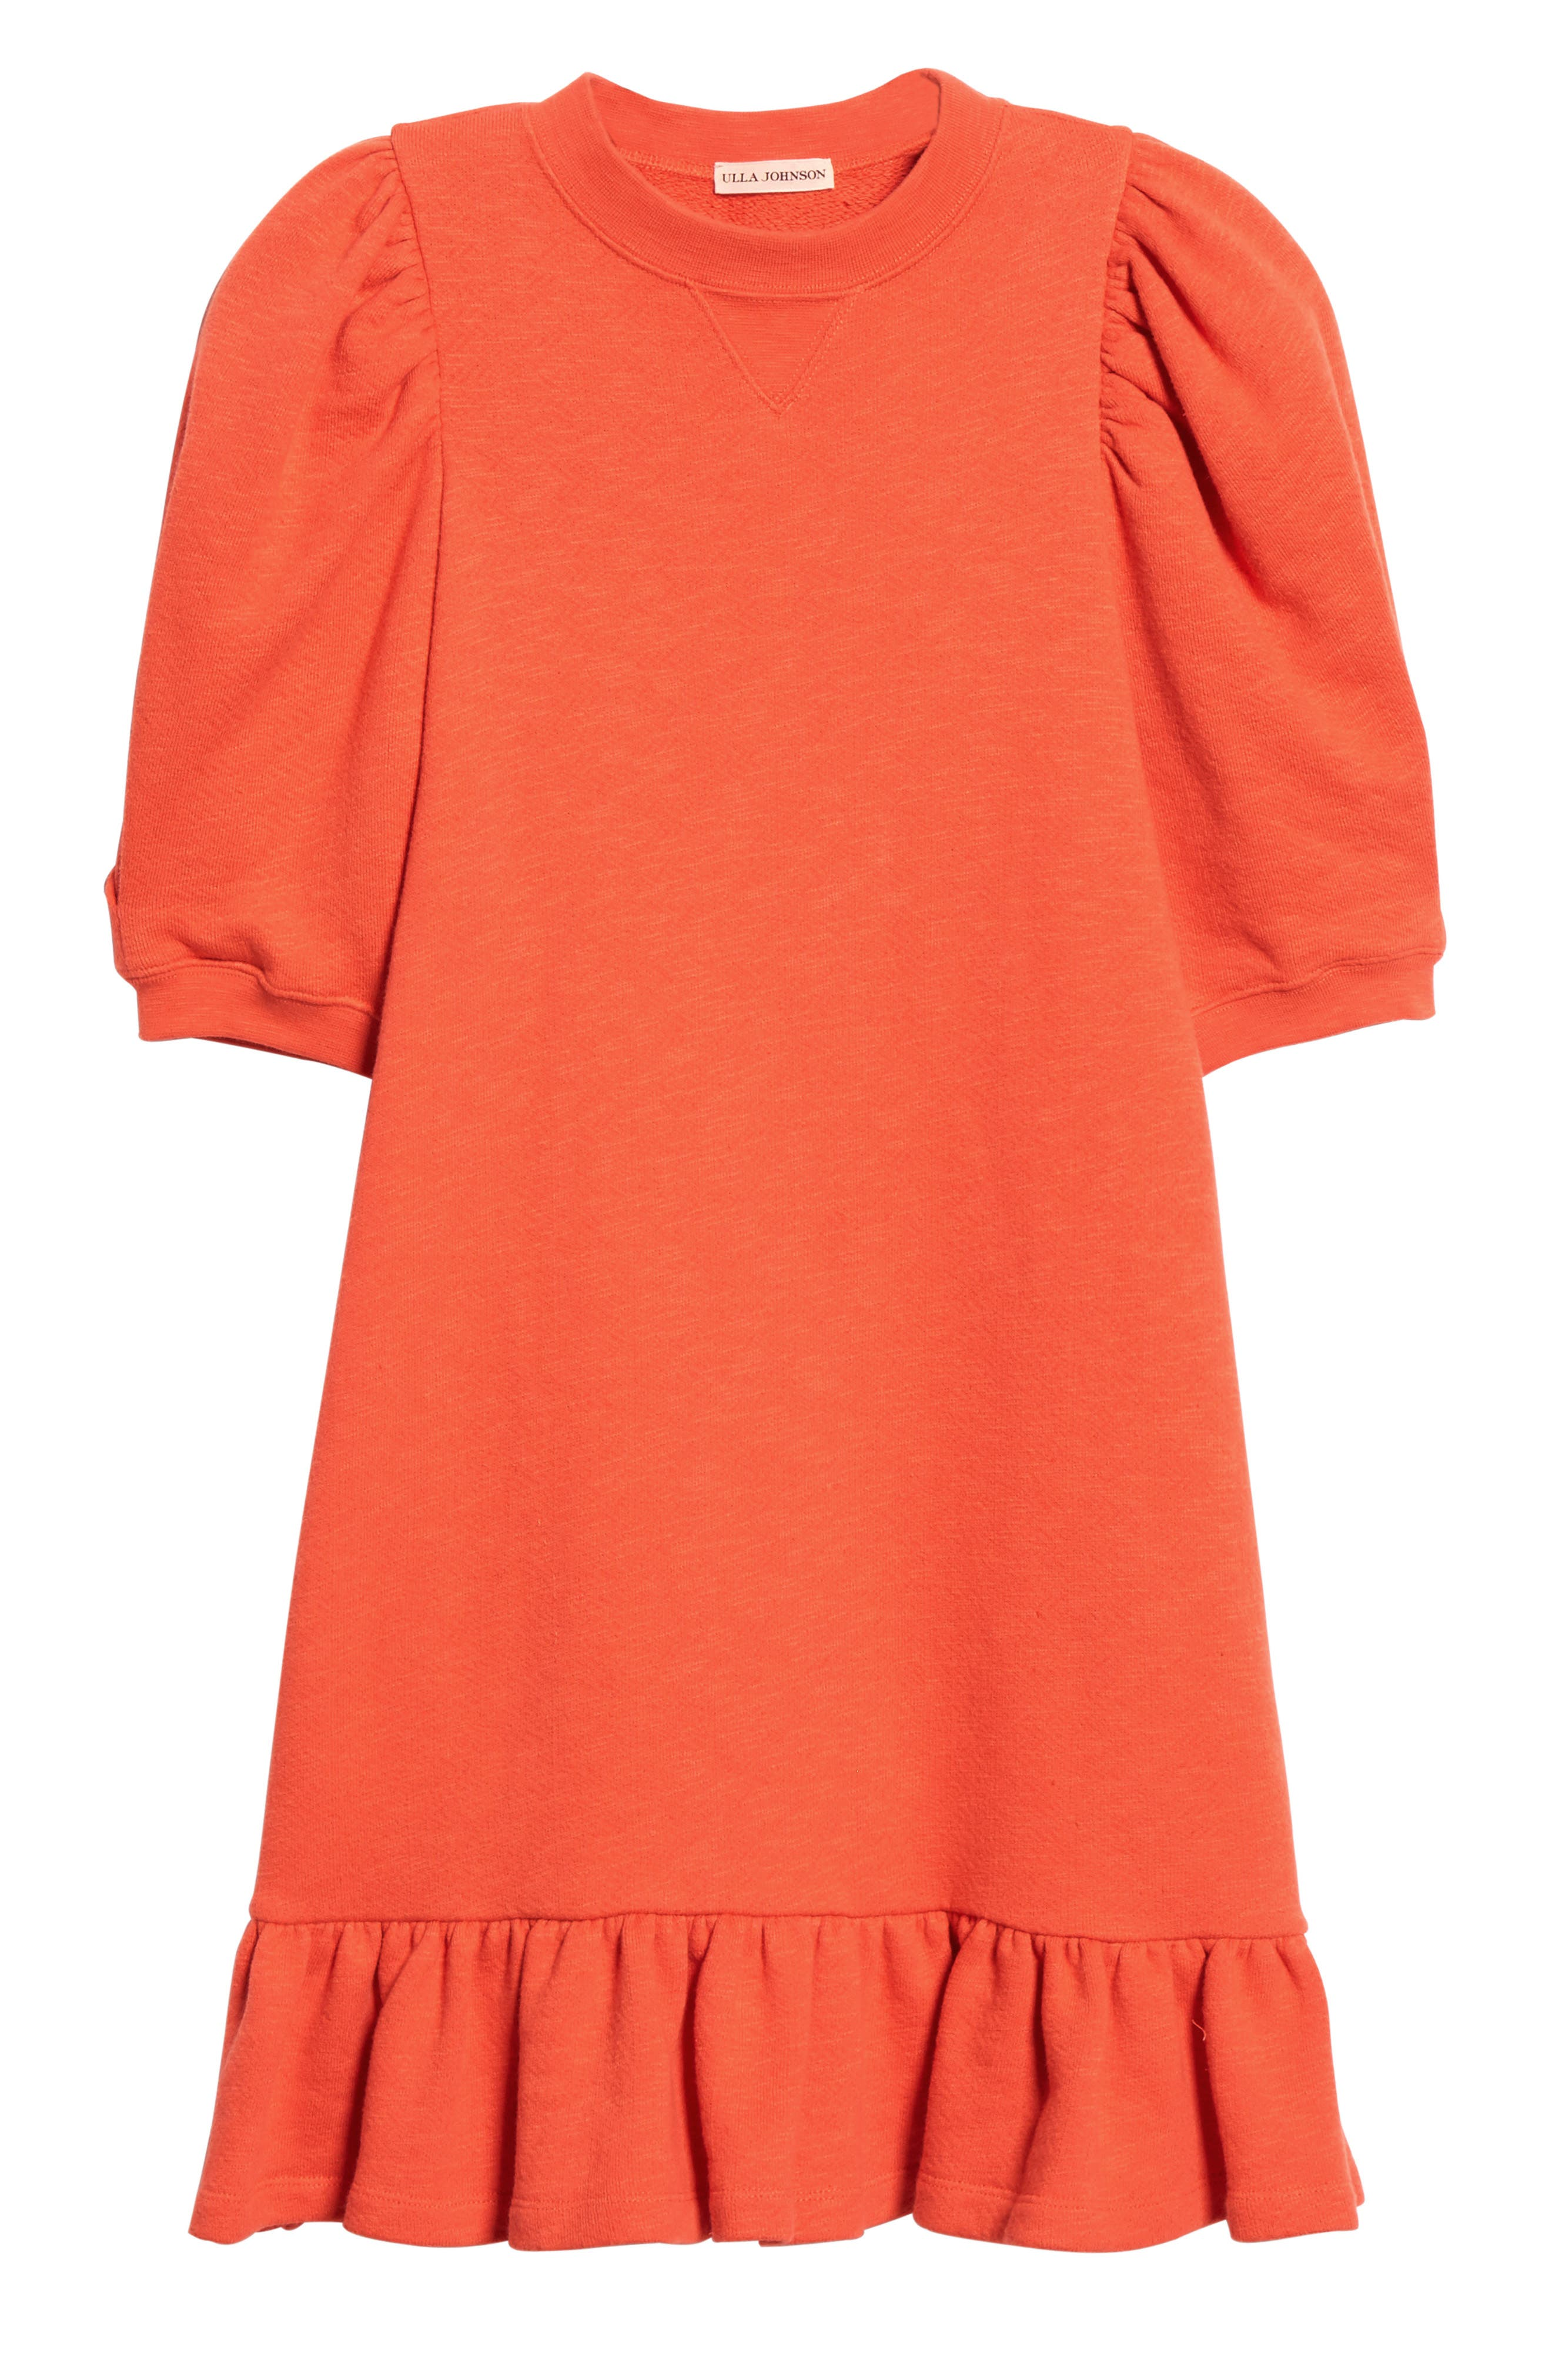 ULLA JOHNSON, Landry Puff Sleeve Sweatshirt Dress, Alternate thumbnail 7, color, CHILI